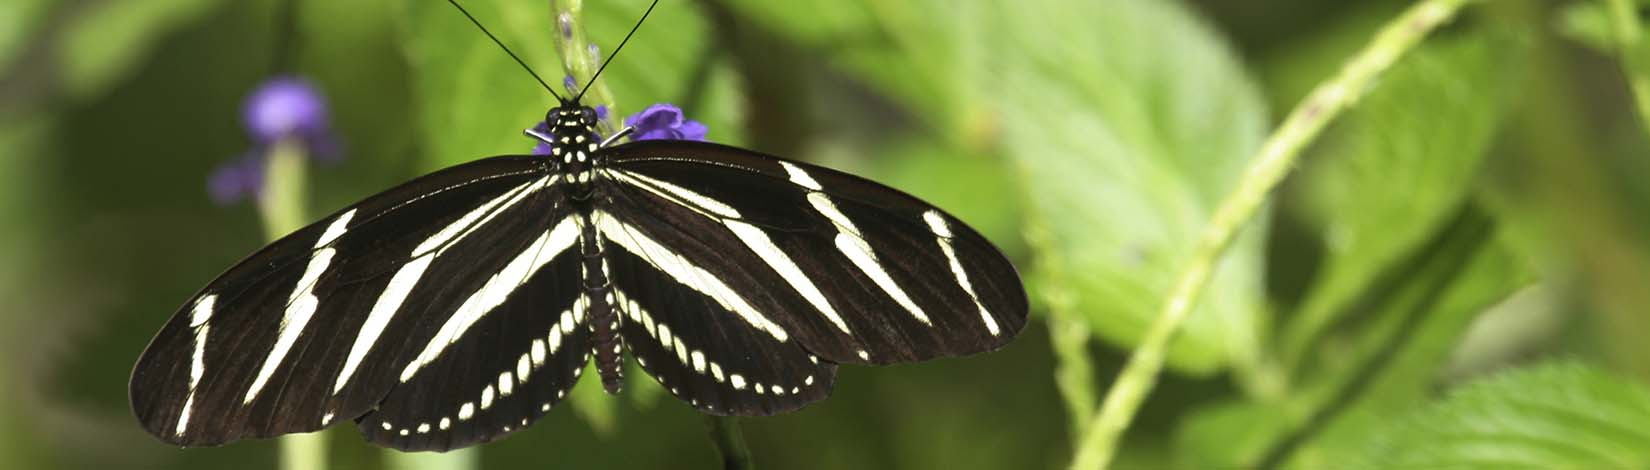 Zebra longwing butterfly on purple flower